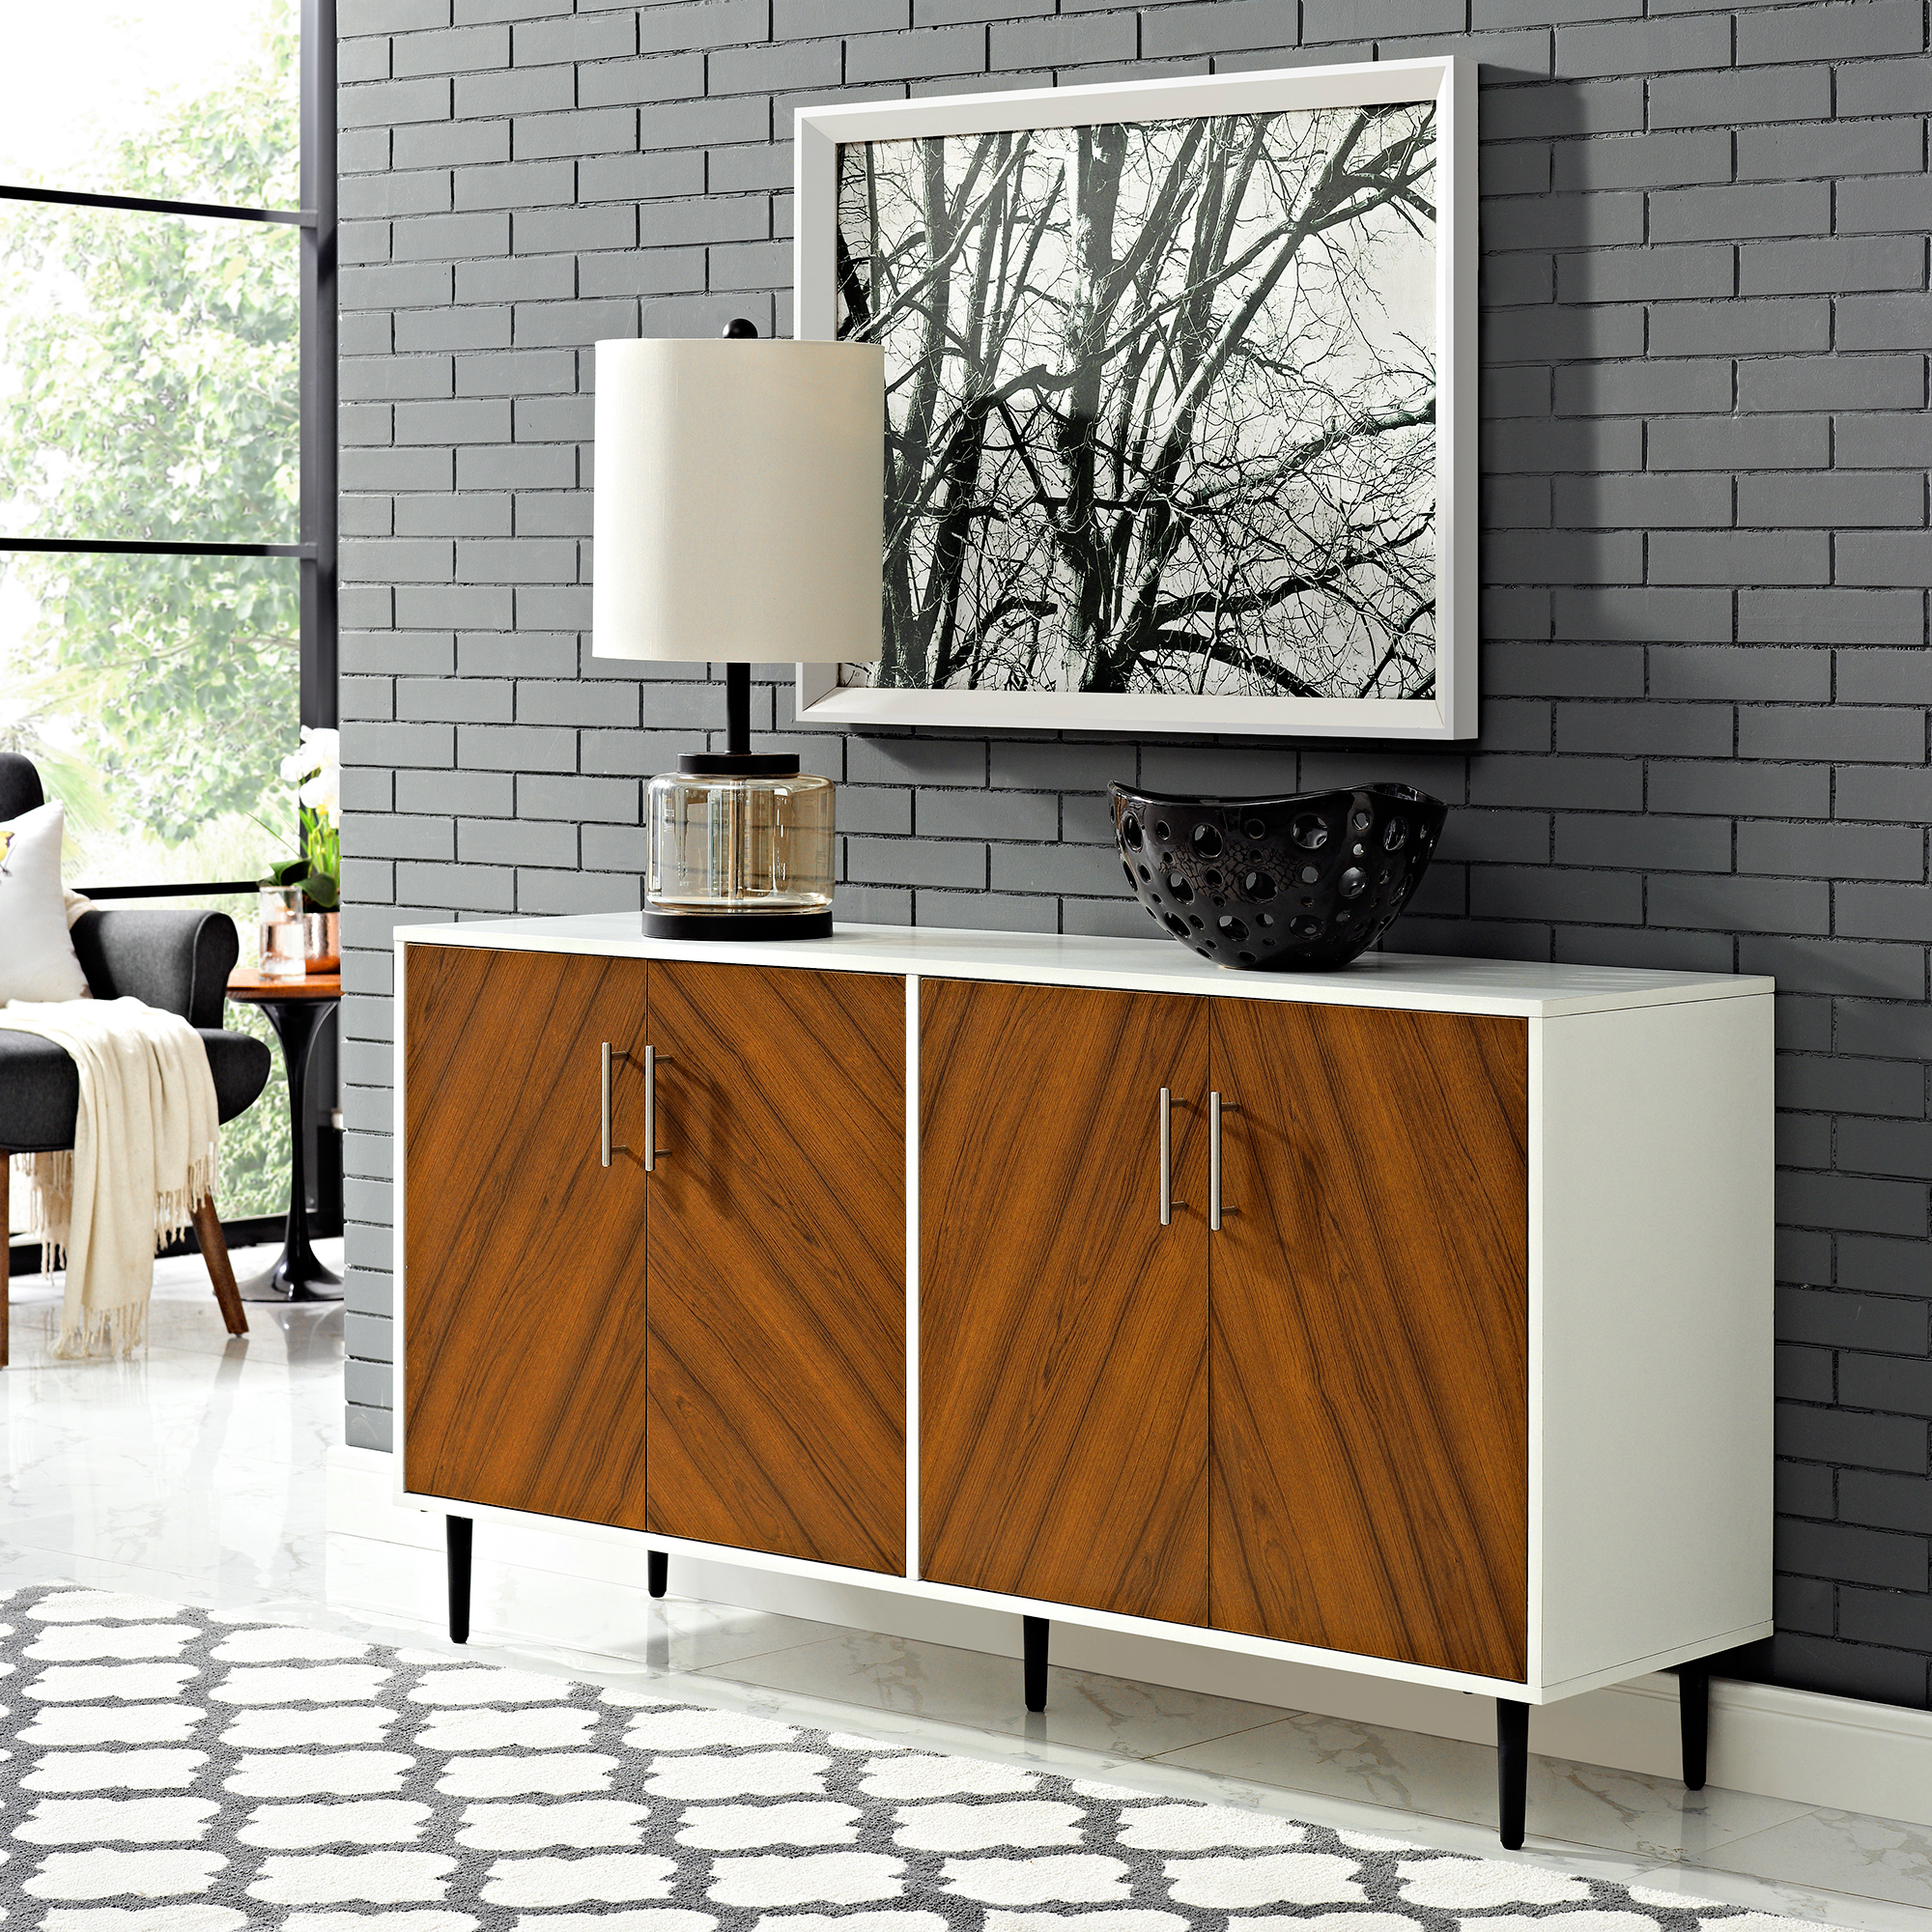 Manor Park Mid Century Modern Bookmatch Buffet – White/teak Throughout Keiko Modern Bookmatch Sideboards (View 17 of 20)